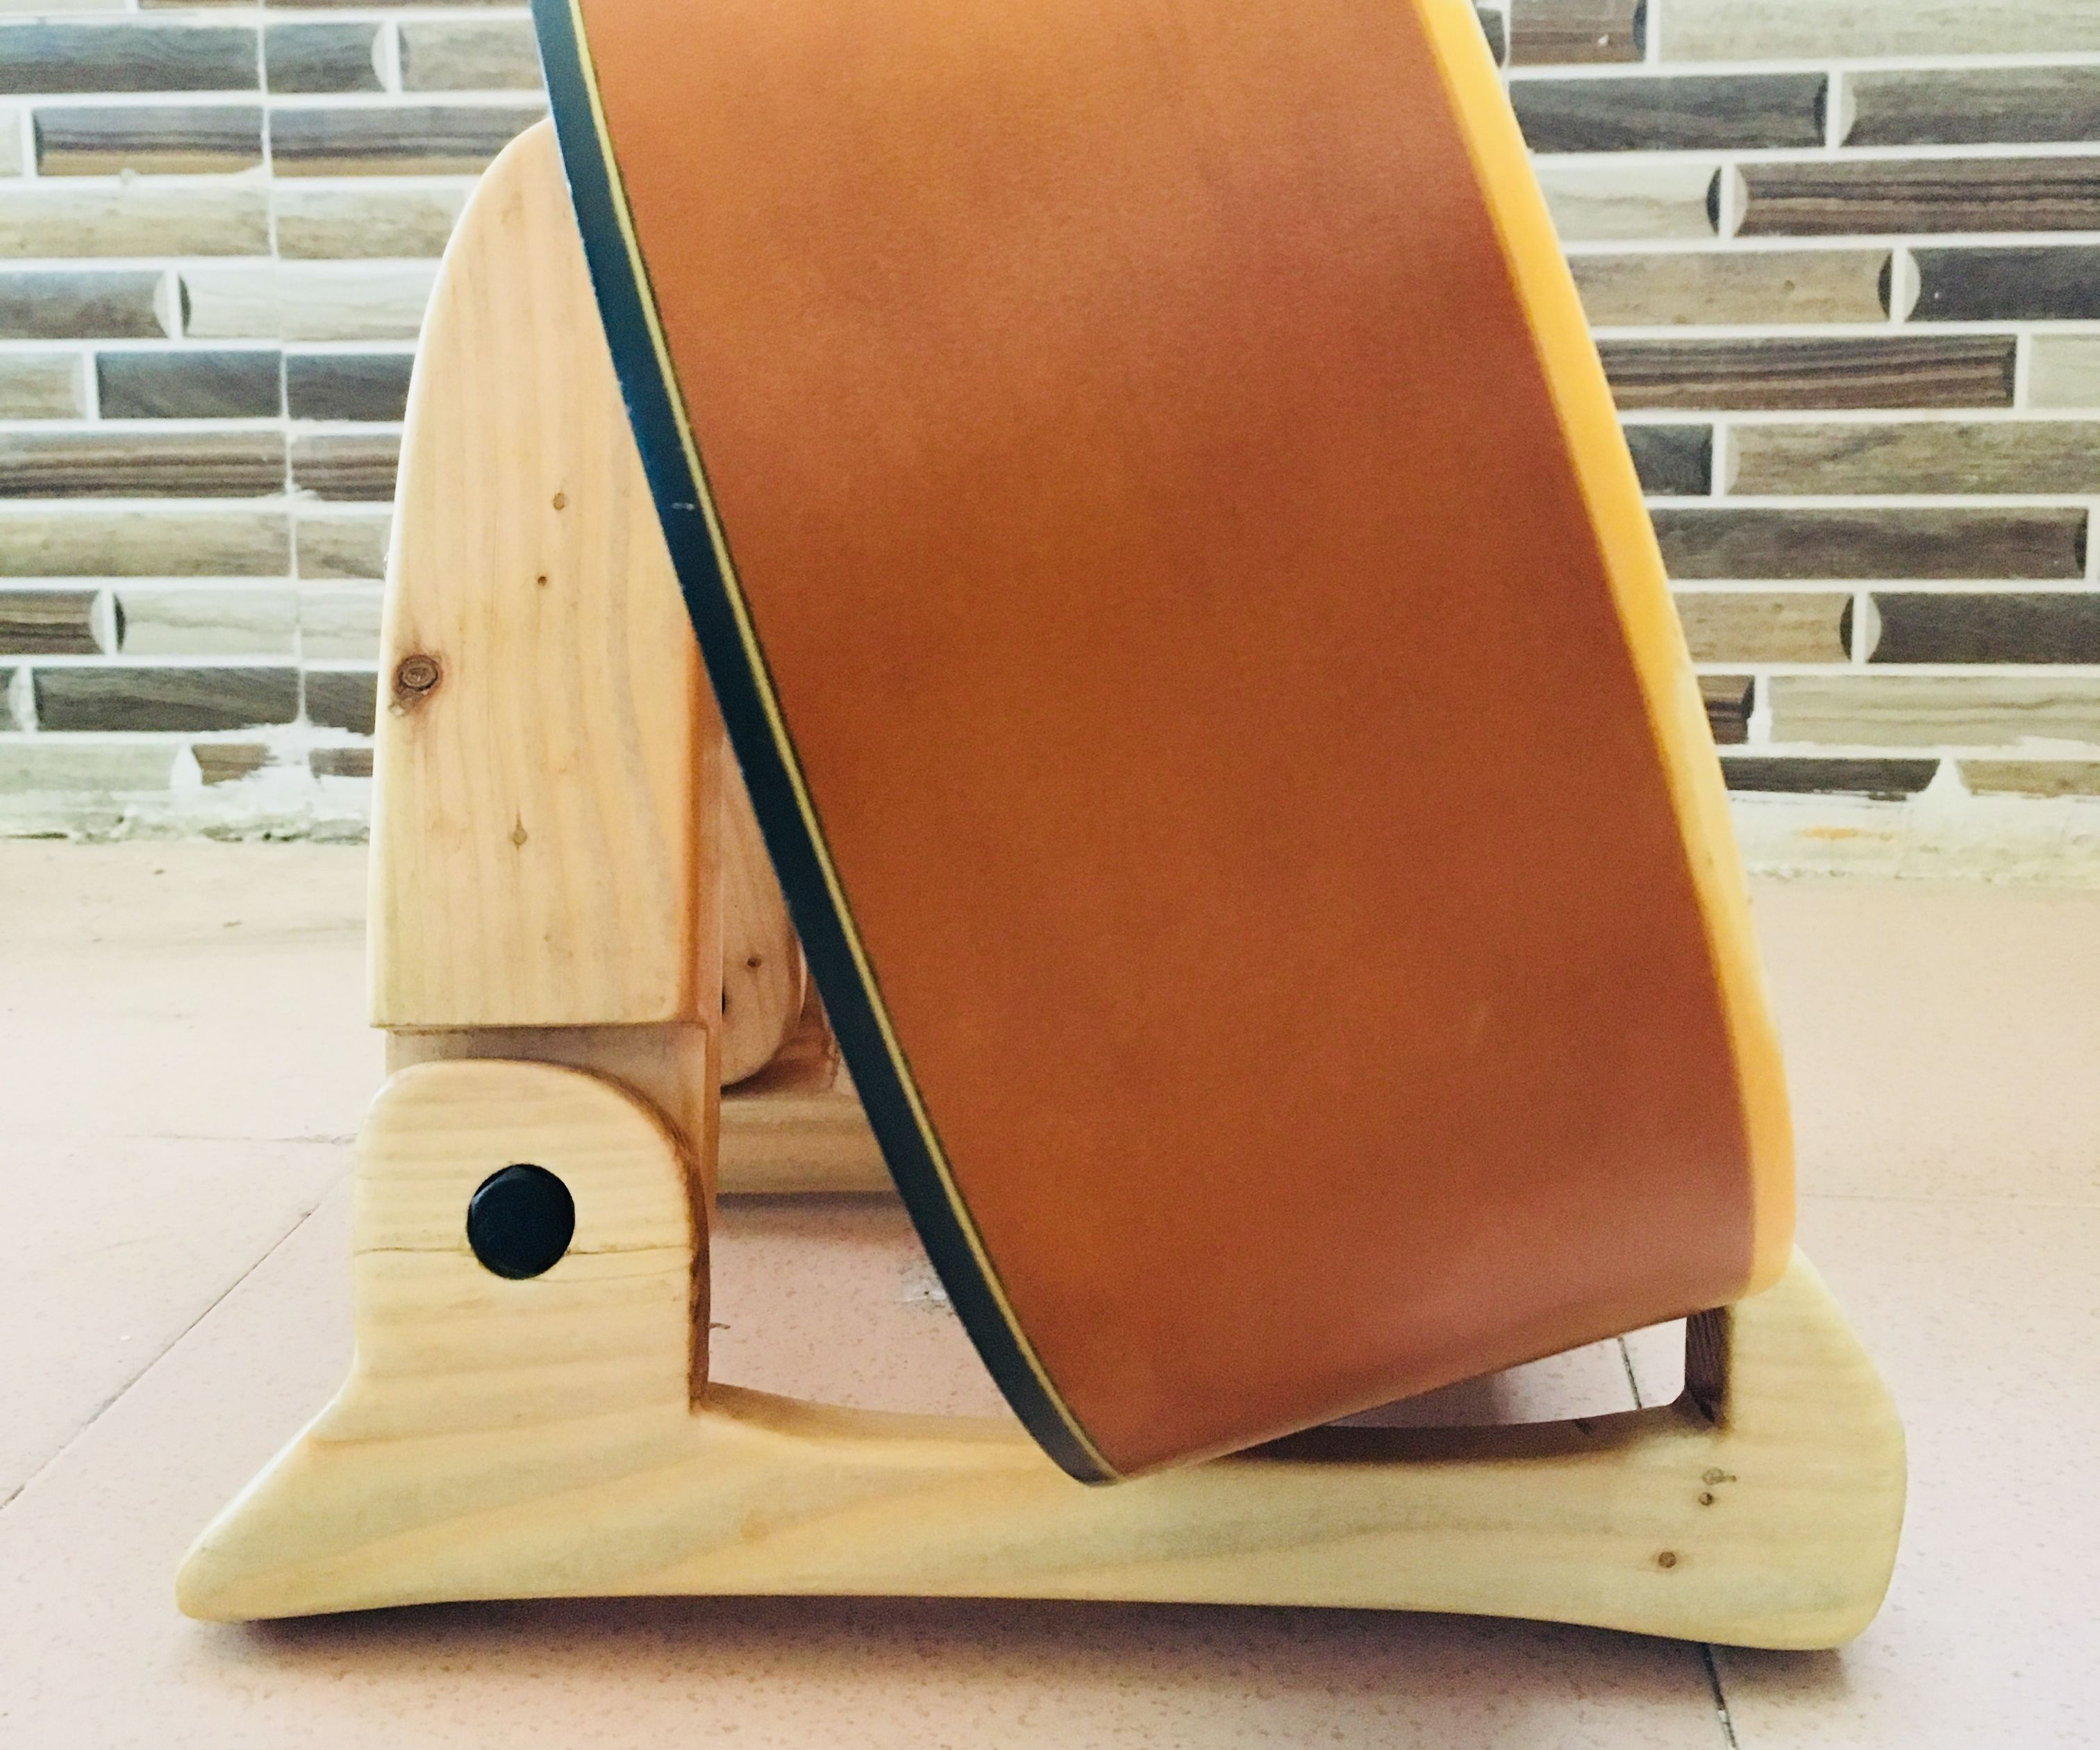 The TUKI Stand: If One Can Do It, Then Toucan Do It!